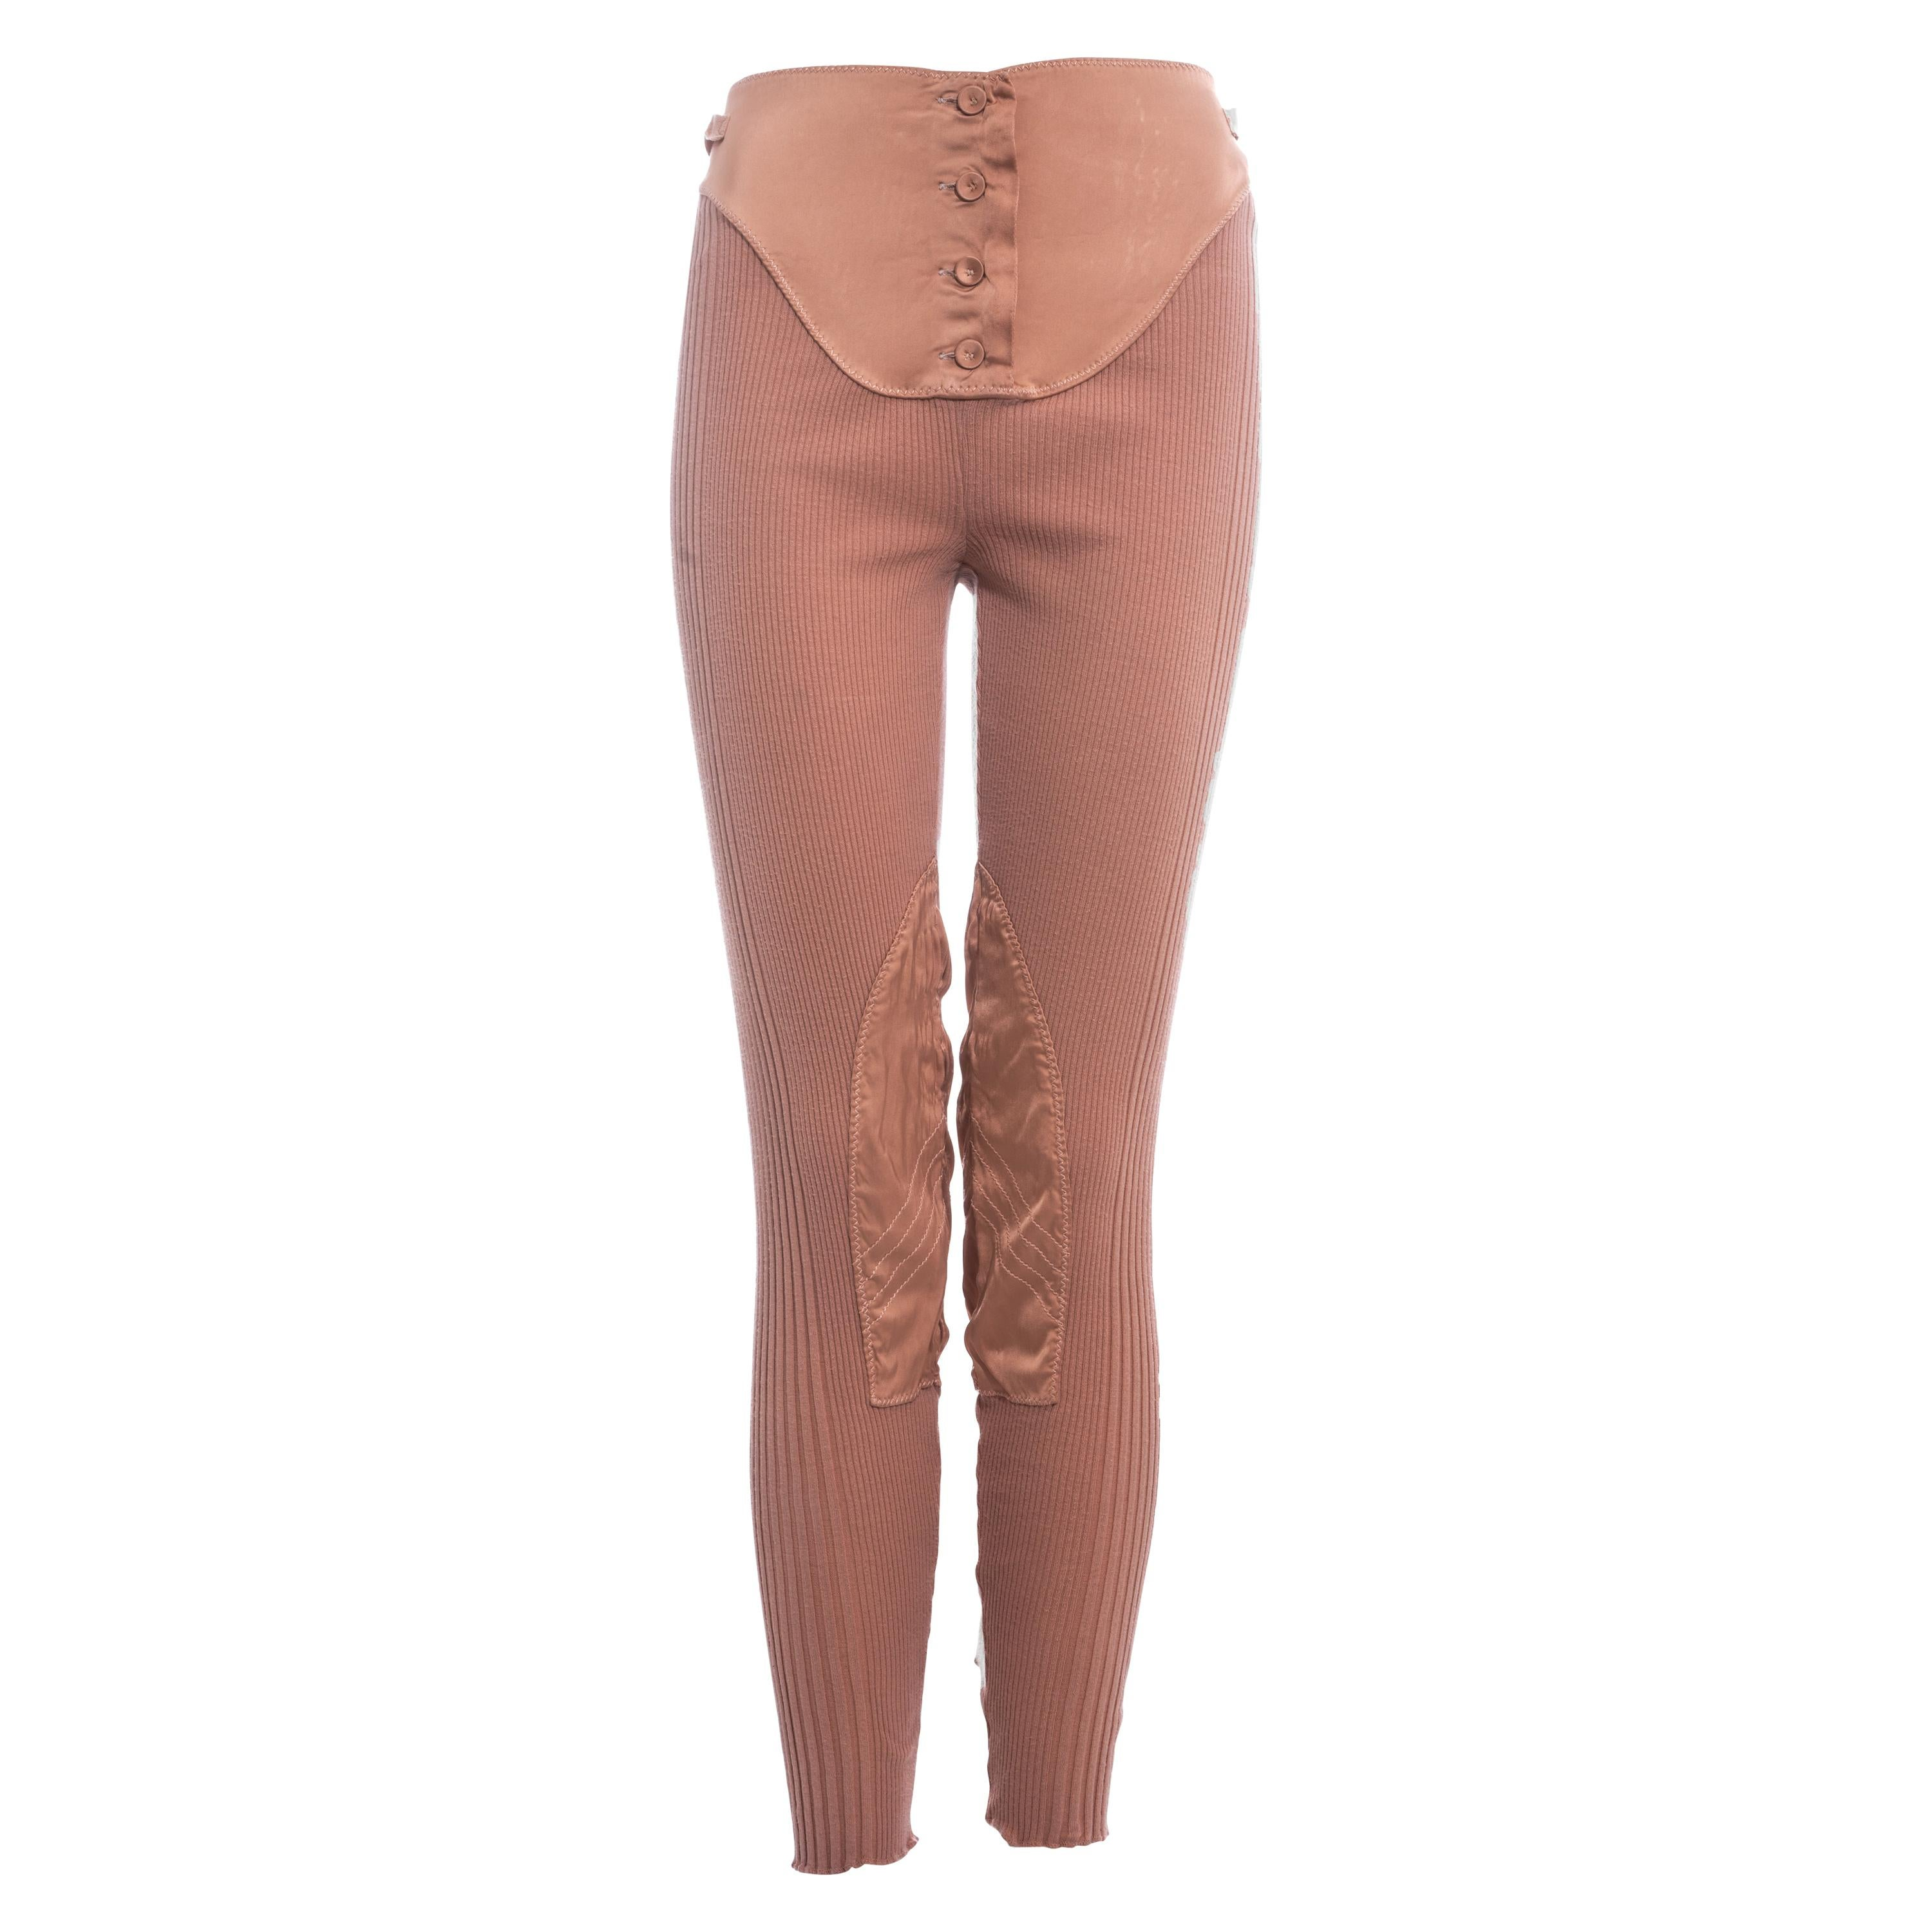 Jean Paul Gaultier peach rib knit and satin lace up legging pants, ss 1992